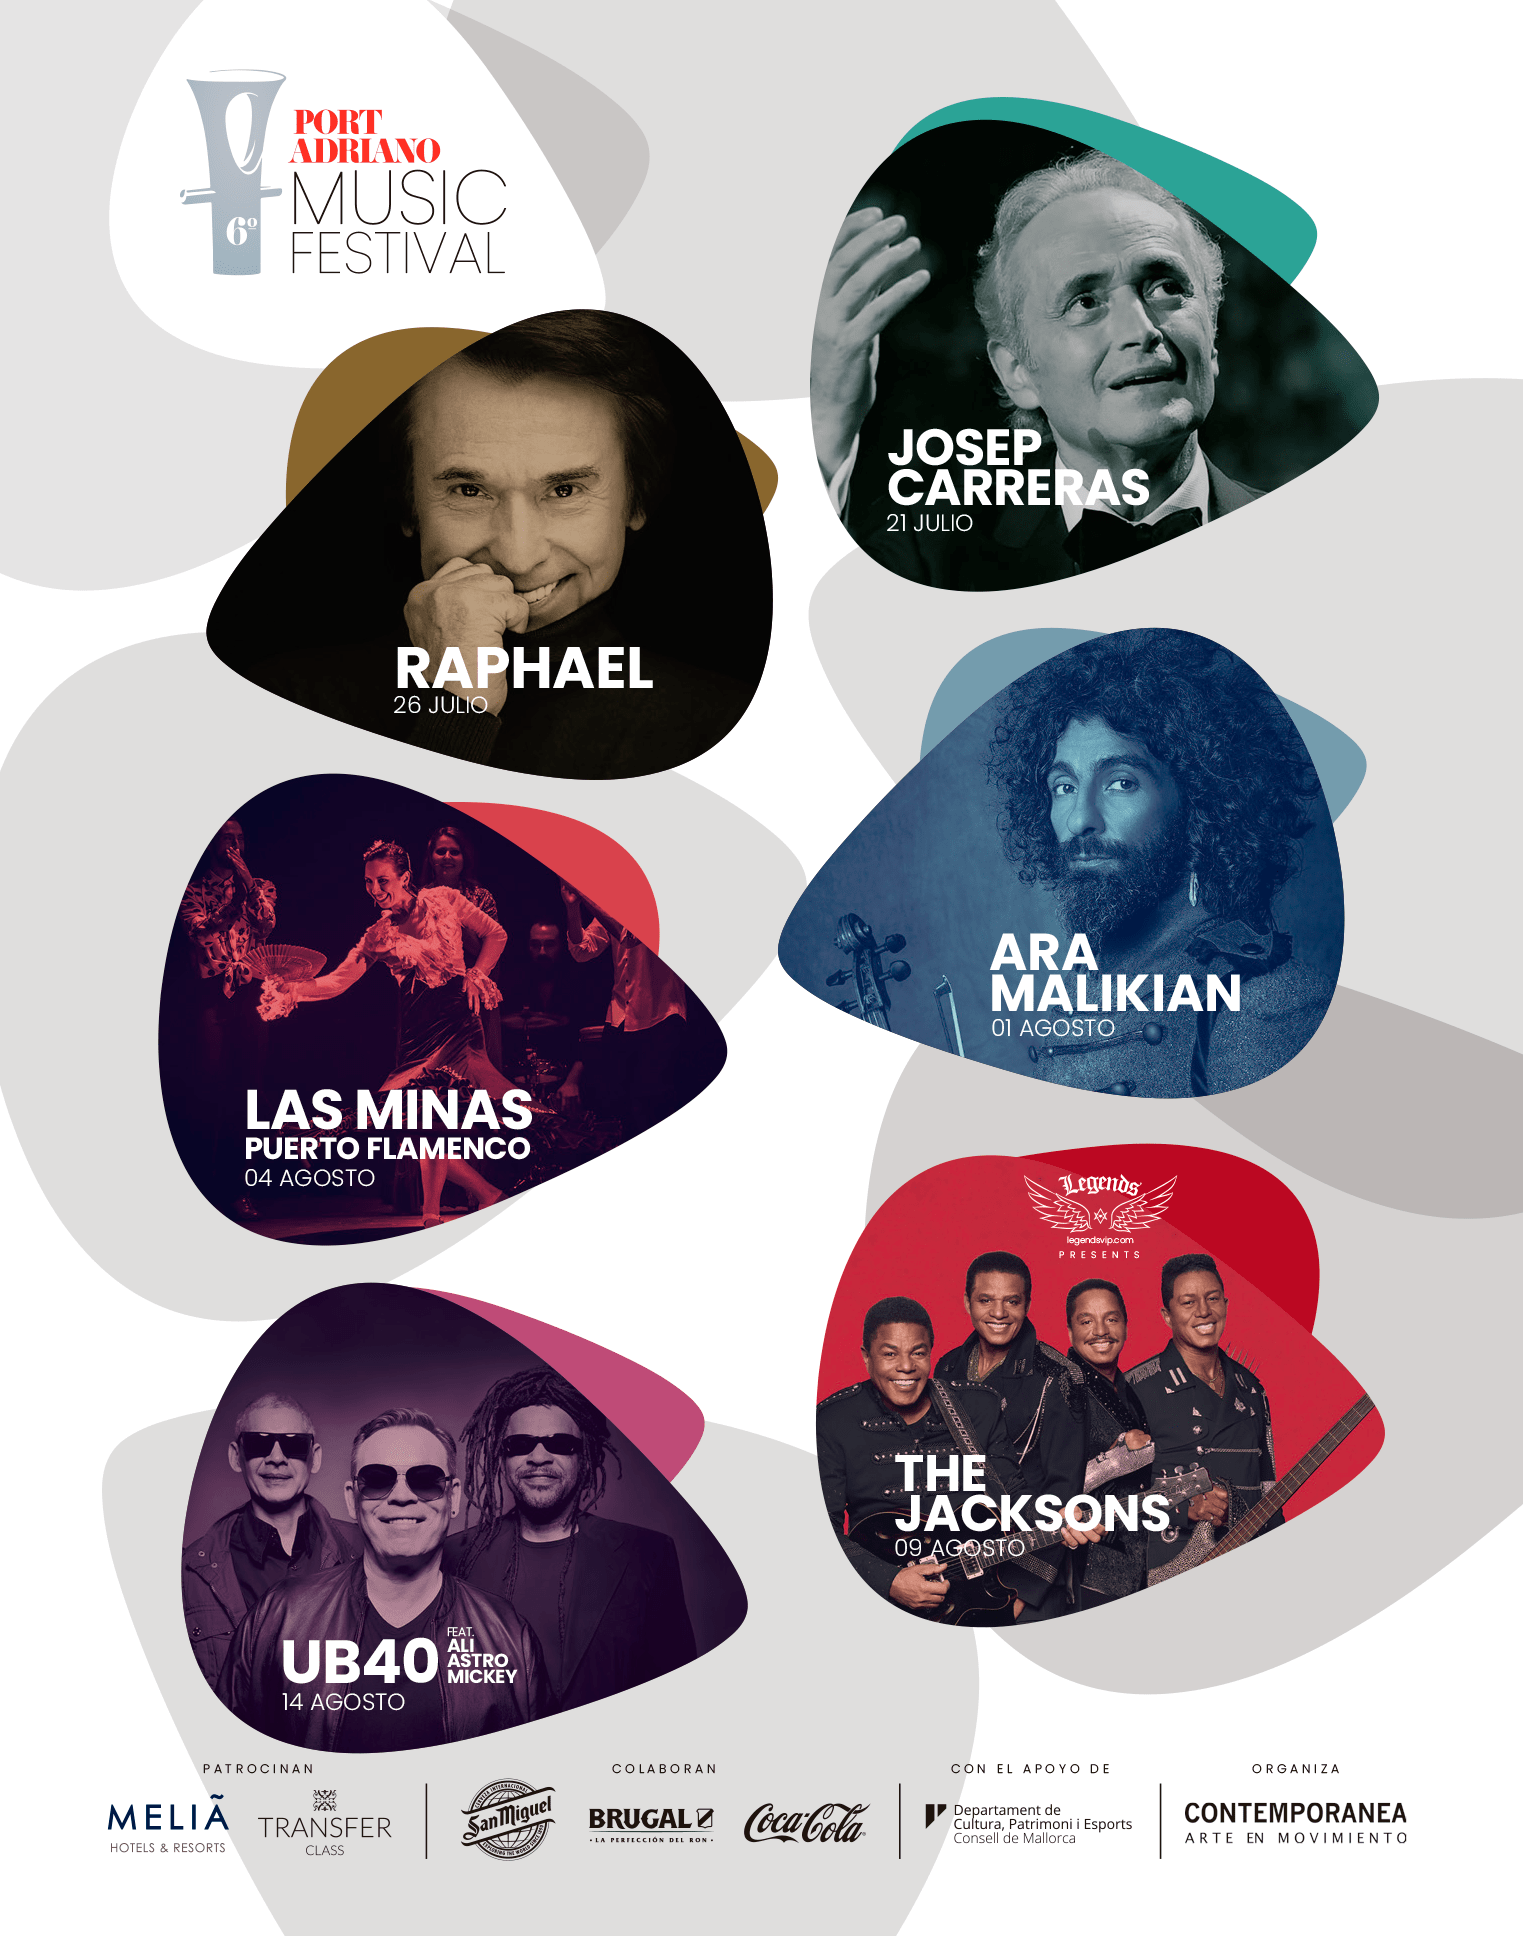 https://portadriano.com/musicfestival/wp-content/uploads/2020/07/PAMF18.png